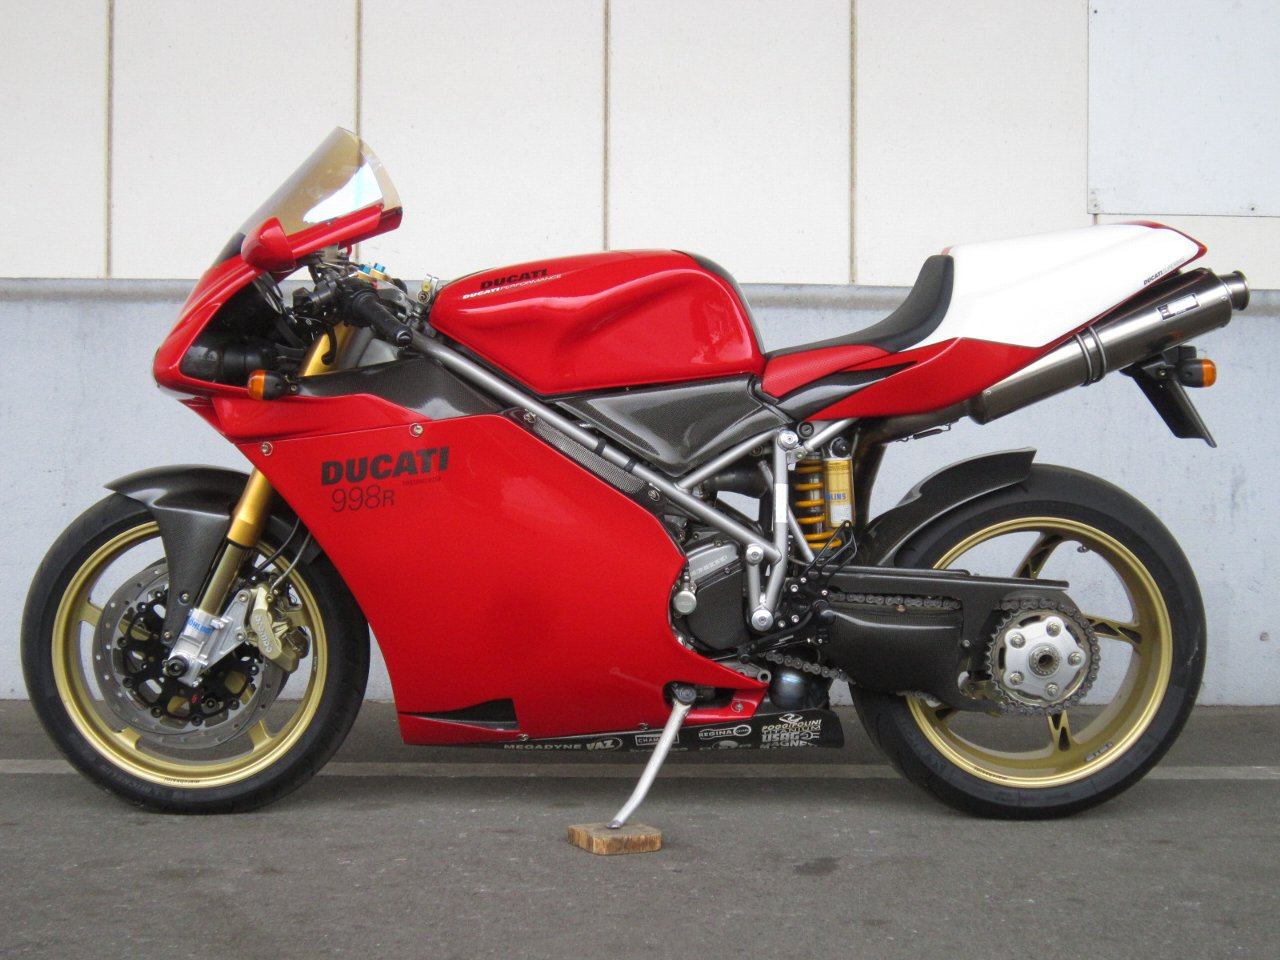 Ducati 998 R 2002 wallpapers #11802